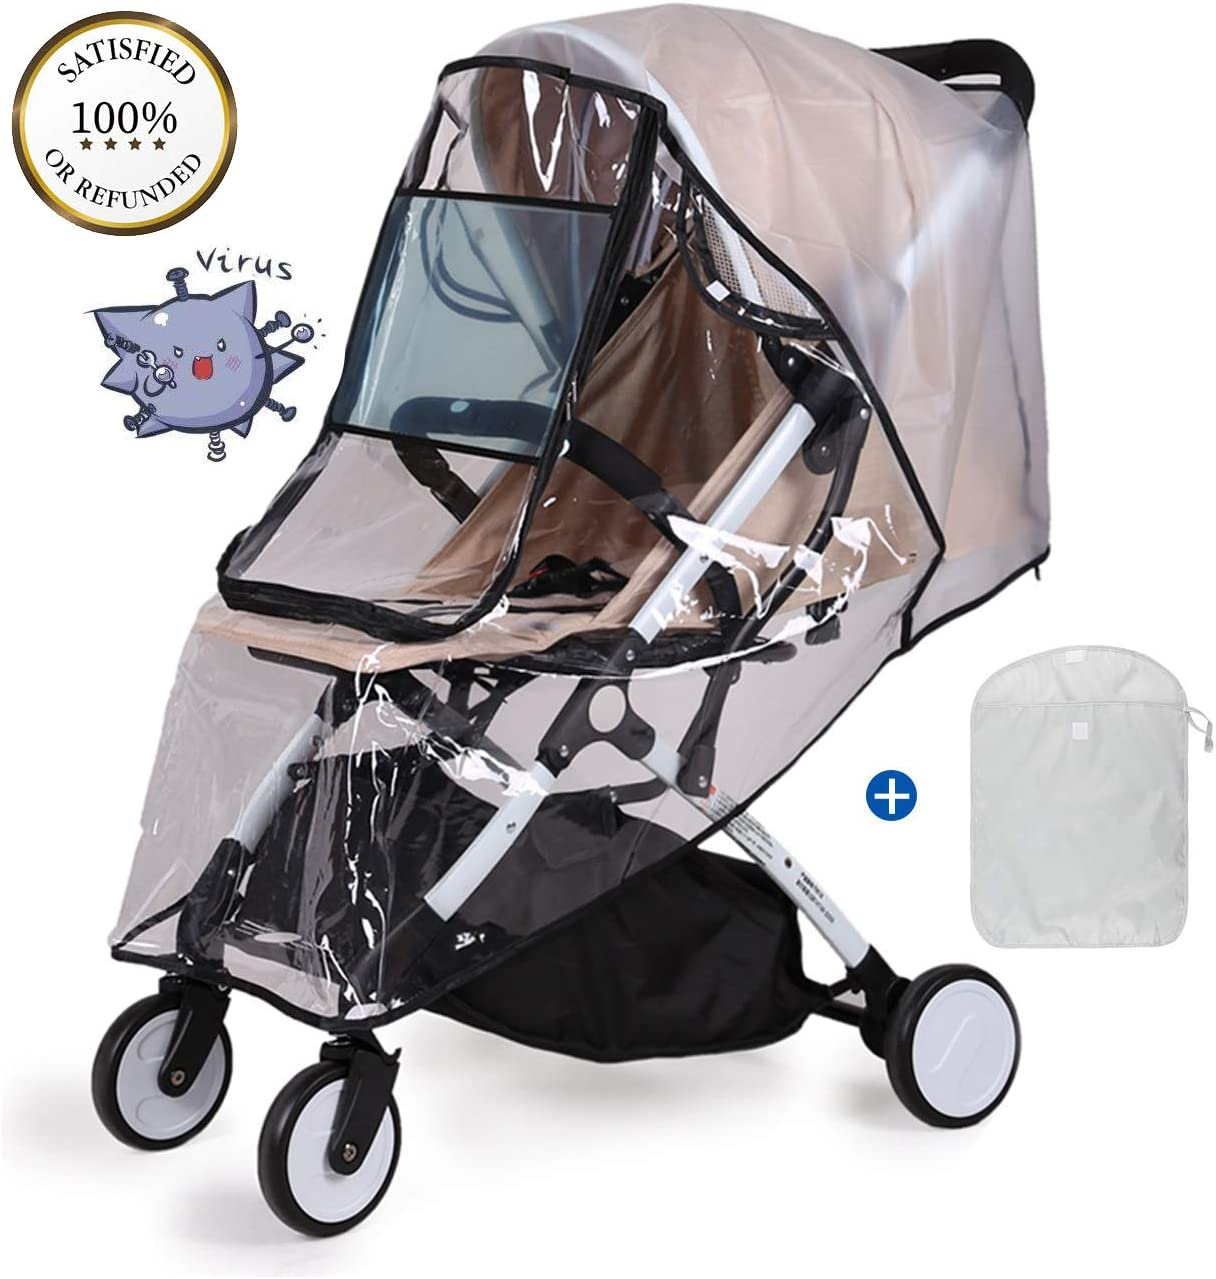  PVC-Free Stroller Buggy Air Circulating Water Resistant and Durable Baby Against Rain Snow Wind Sleet Dust Travel Outdoor Clear EVA Transparent Universal Rain Cover for Pushchair Black-M